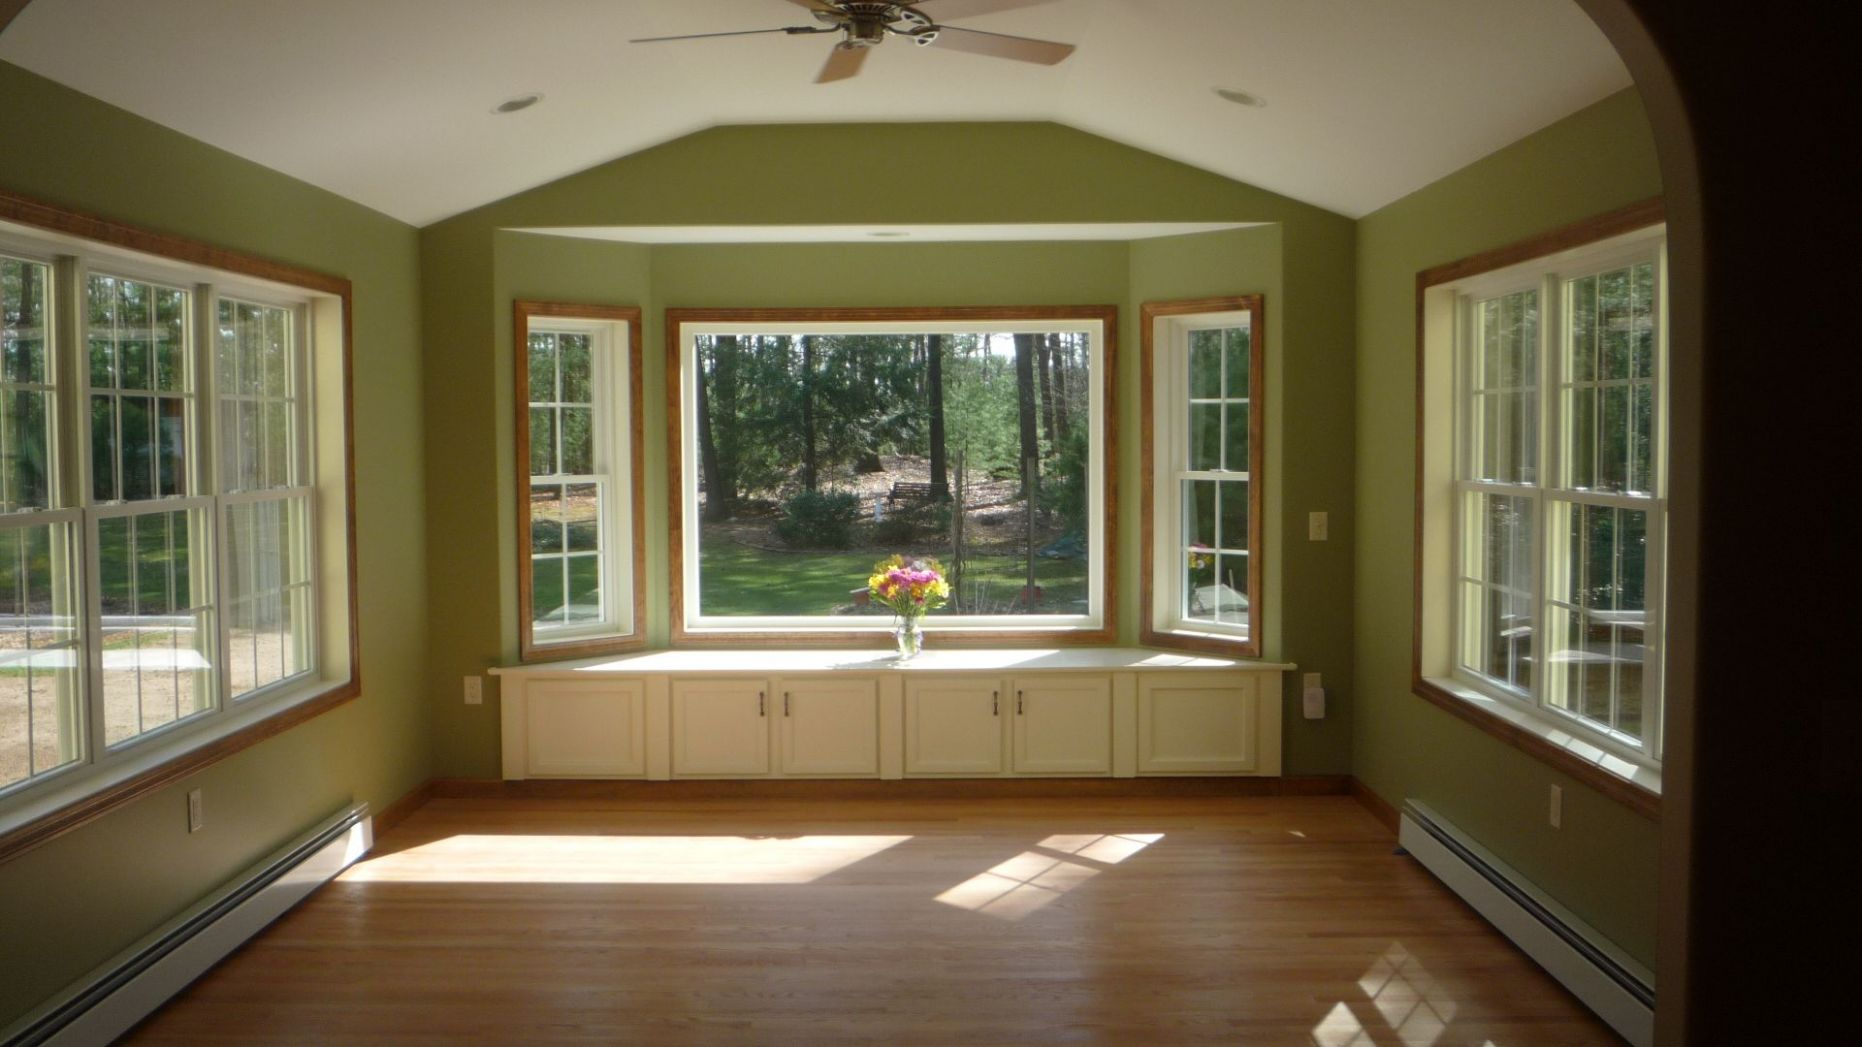 Finished Room (With images) | Family room addition, Room additions ..